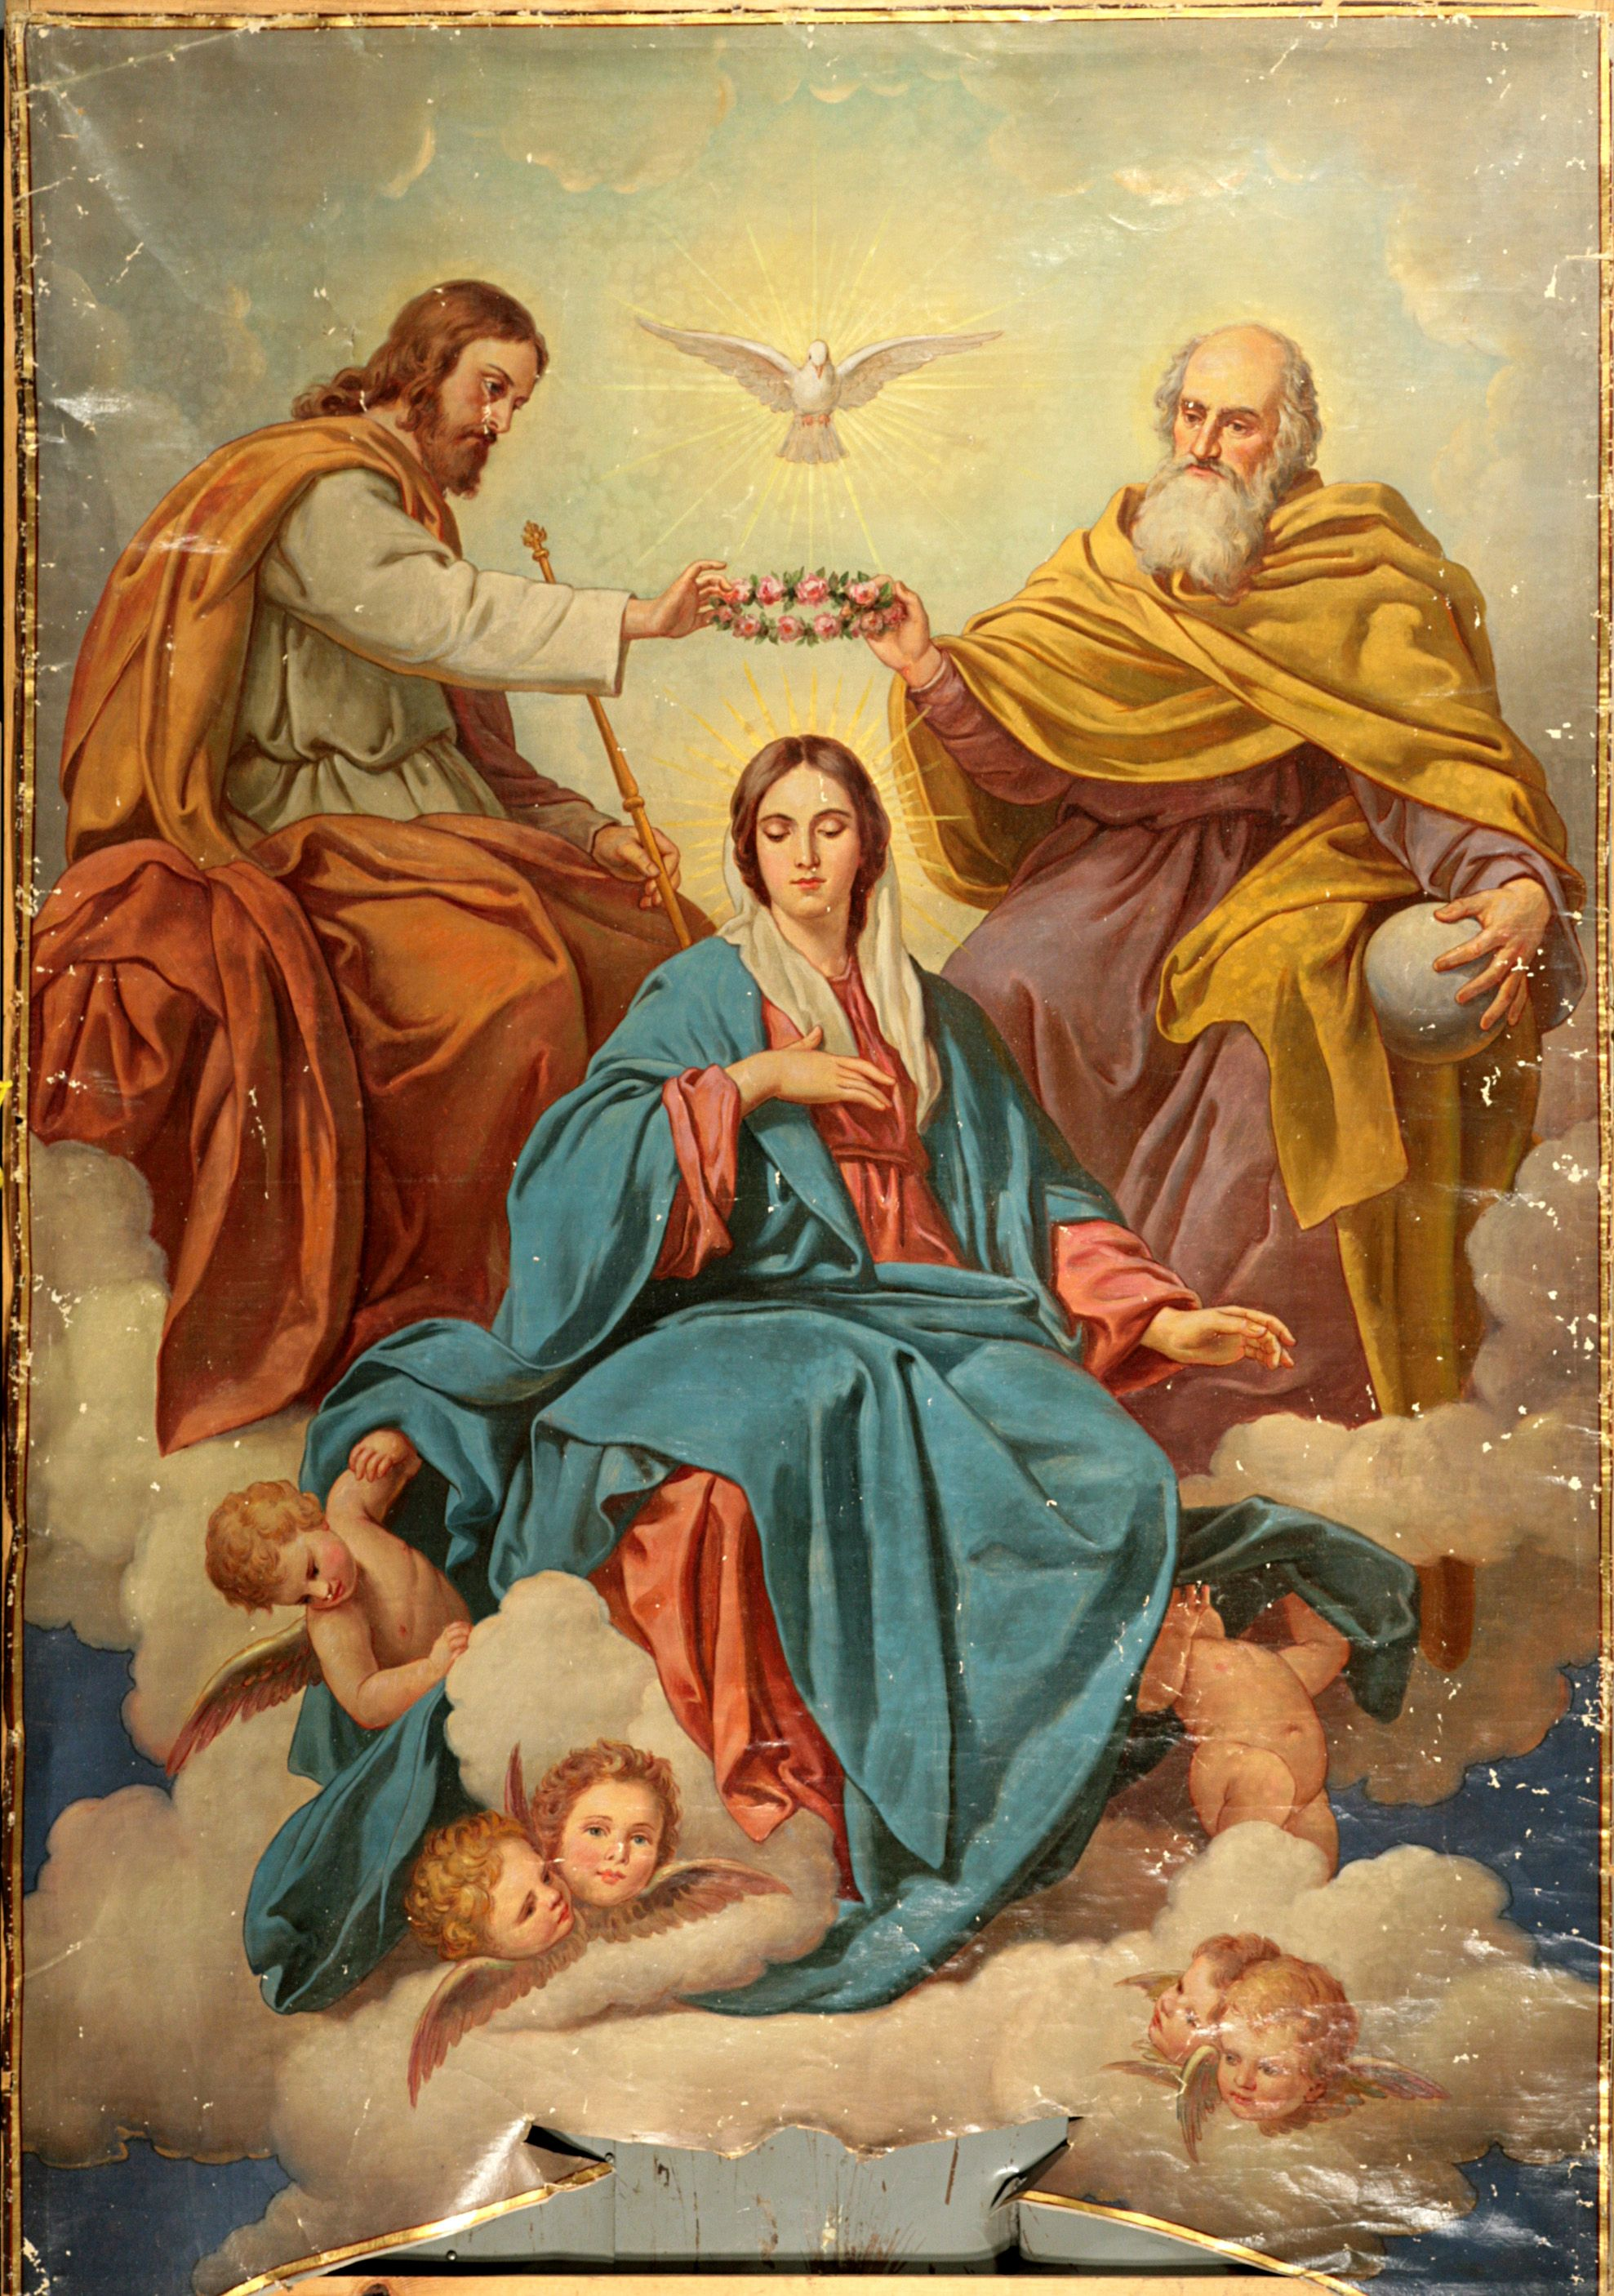 the holy virgin mother mary We offer praise to the blessed virgin mary and to the holy thou art my mother, o virgin mary: scott p prayers for may, the month of the virgin mary.